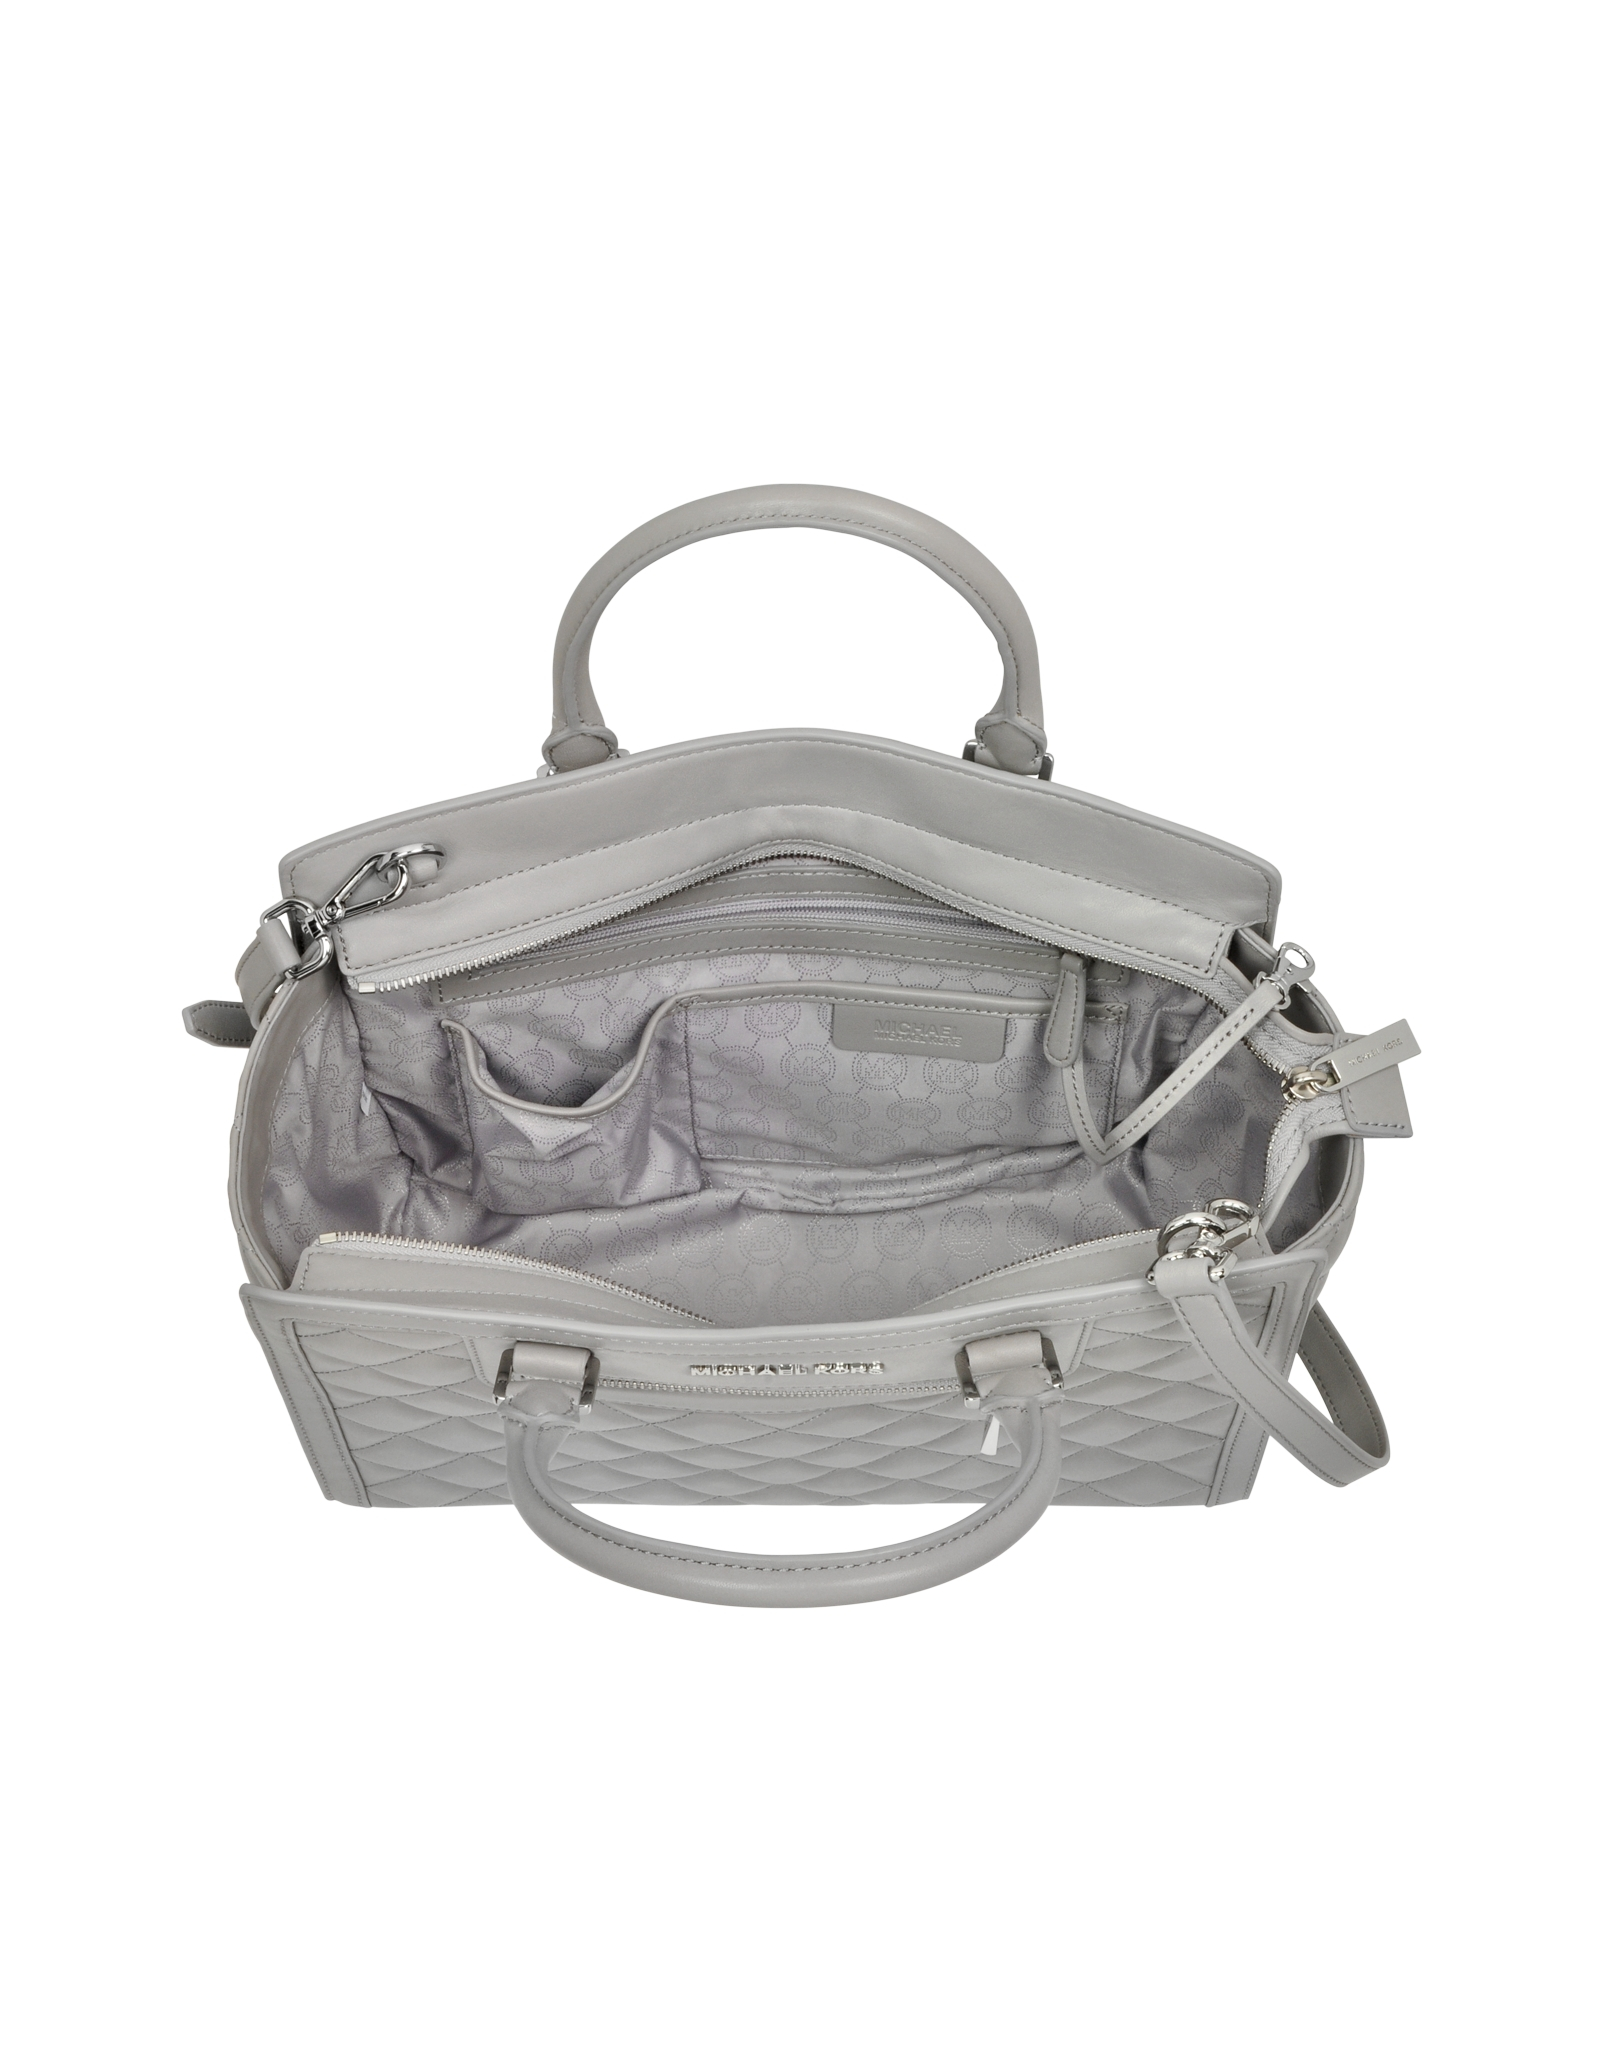 Lyst - Michael Kors Selma Large Pearl Grey Quilted Leather